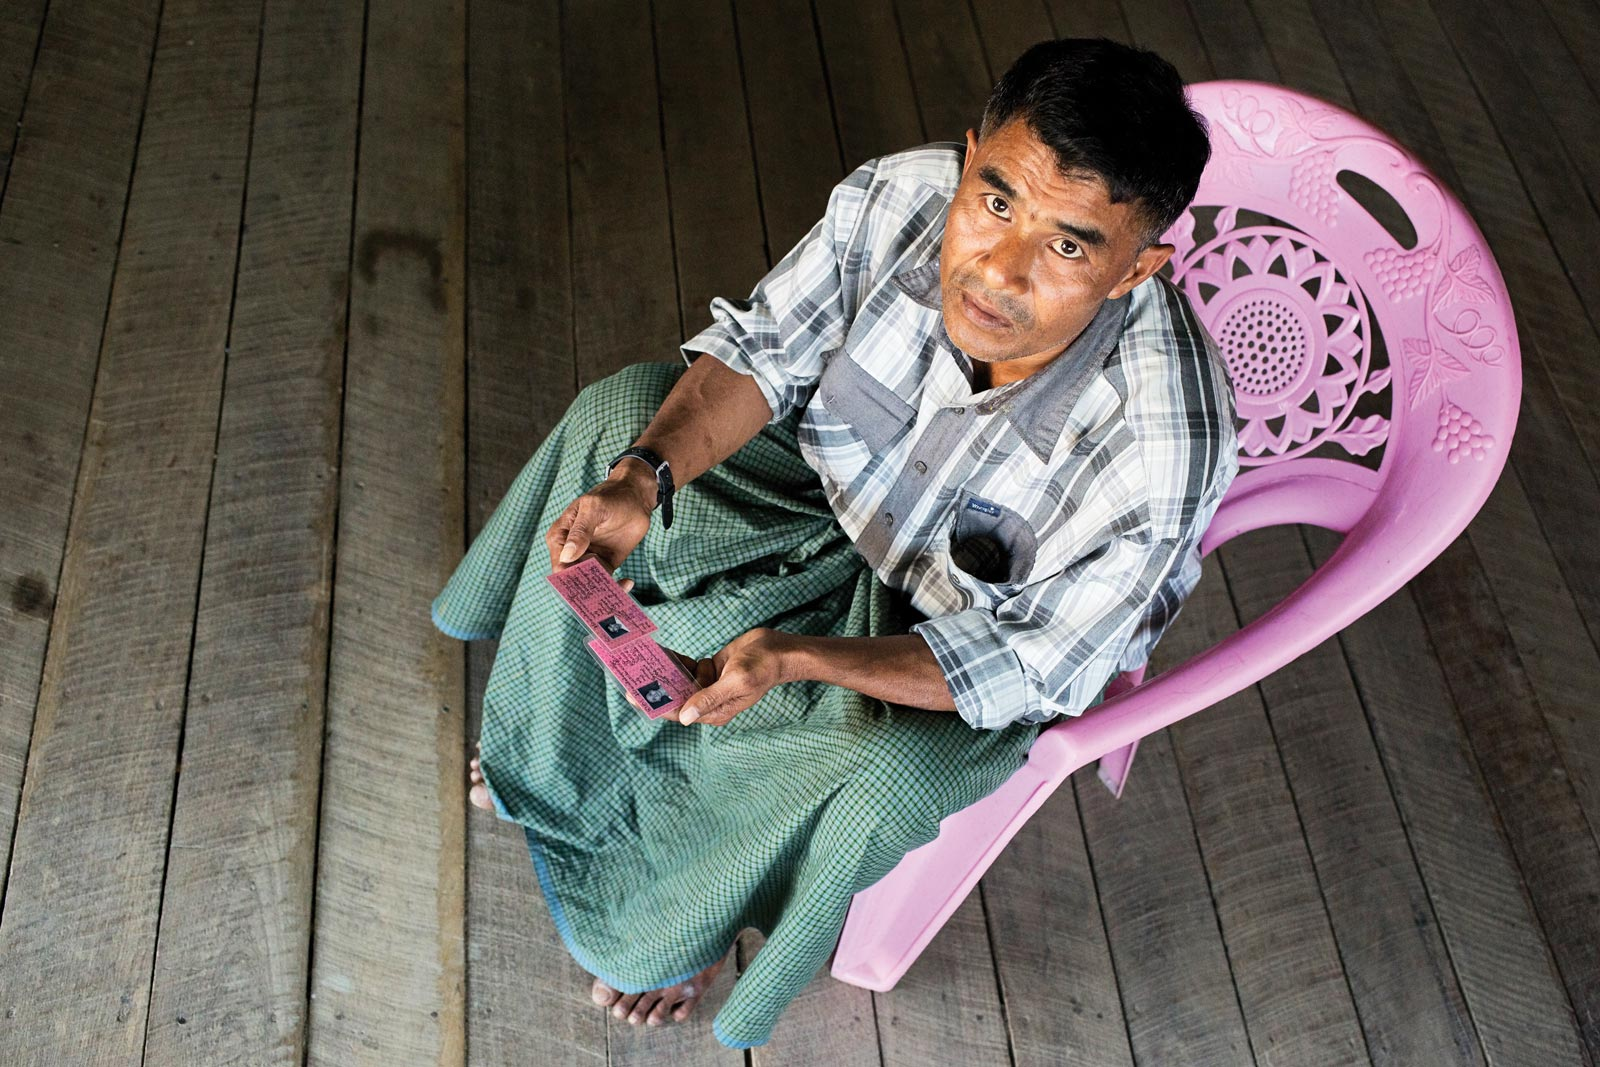 Maung Zaw, an ethnic Kaman who was branded a 'Bengali' on receiving citizenship in 2014. Photo: Antolín Avezuela Aristu